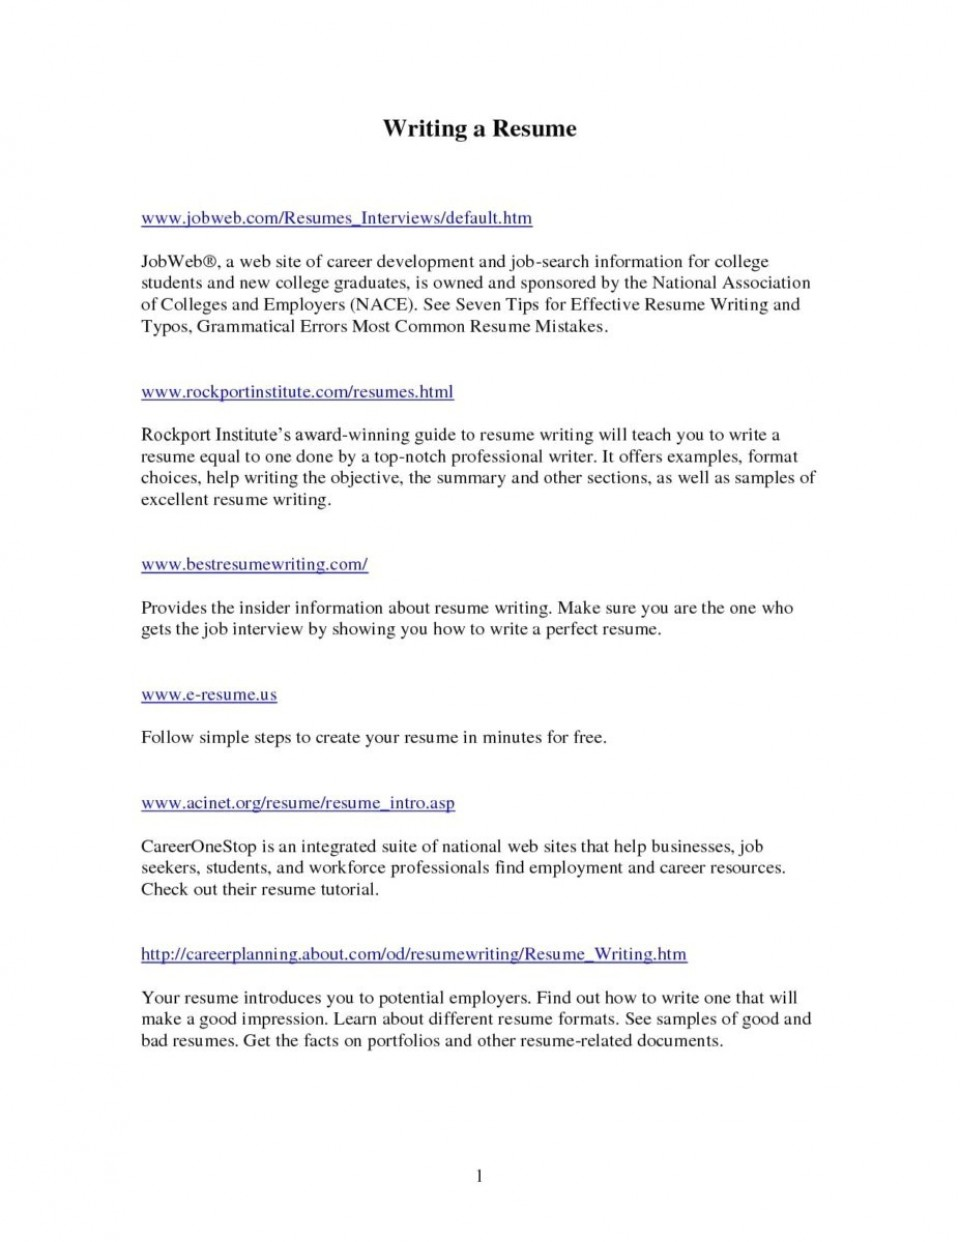 014 Research Paper Resume Writing Service Reviews Format Best Writers Inspirational Help Professional Of Free Services How Write Outstanding Outline To An For A Mla Ppt College 960